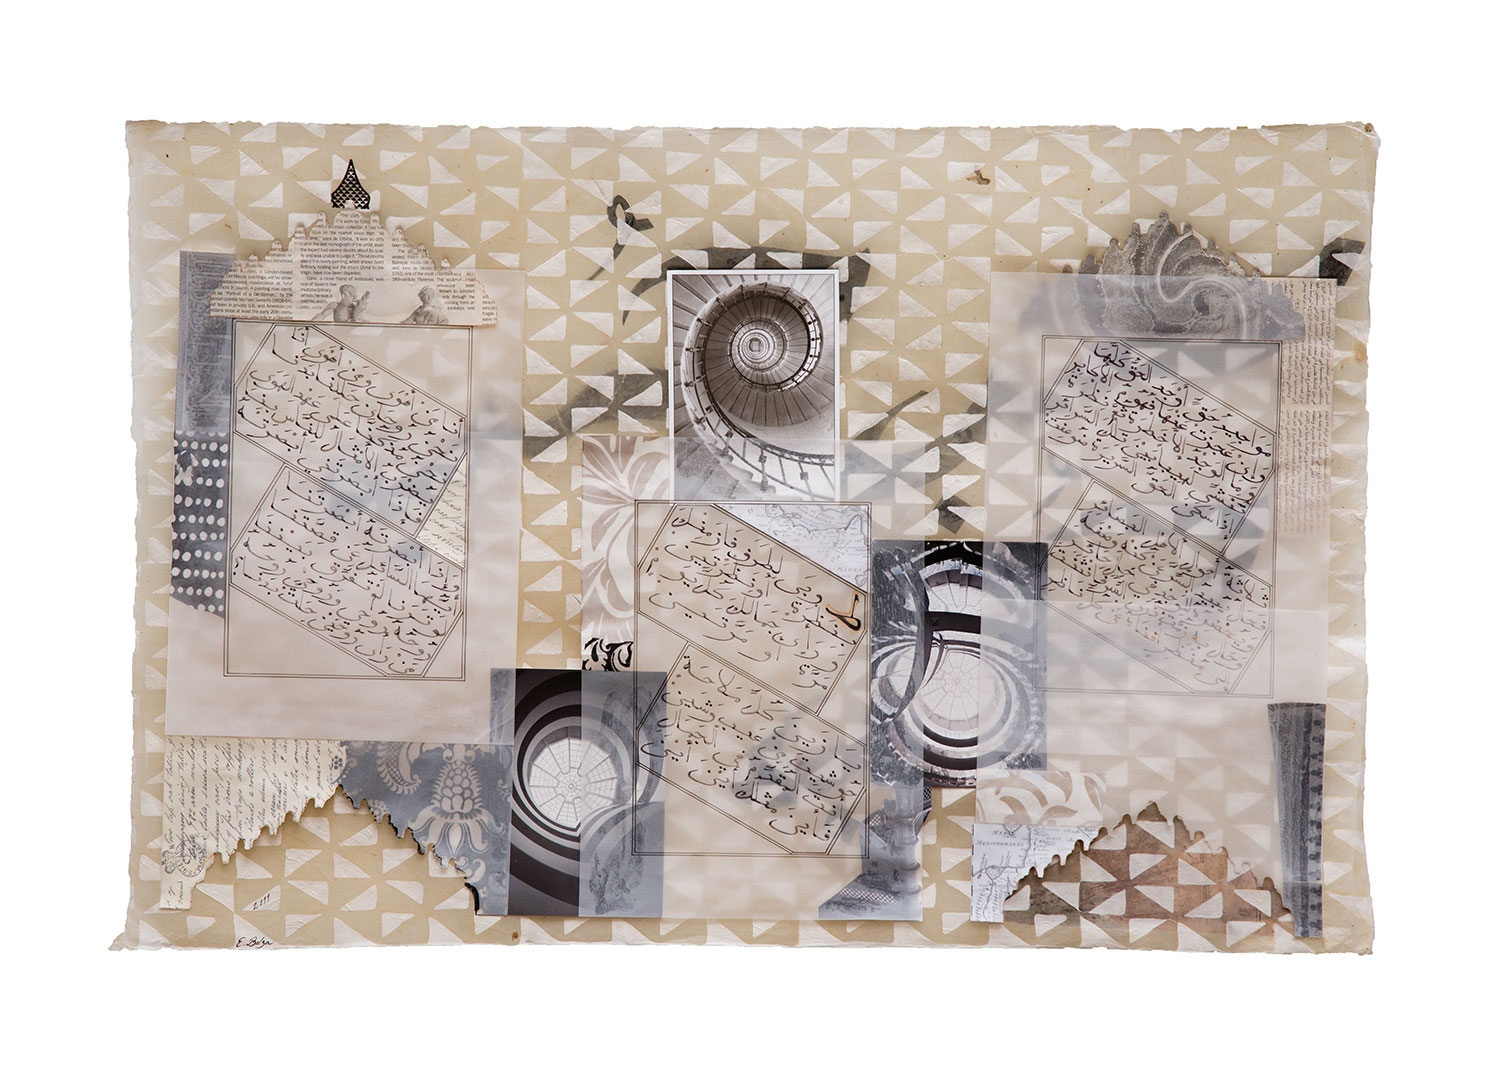 Spirals  Paper and Indian ink on waxed, hand made paper 77 x 52 cm 2011